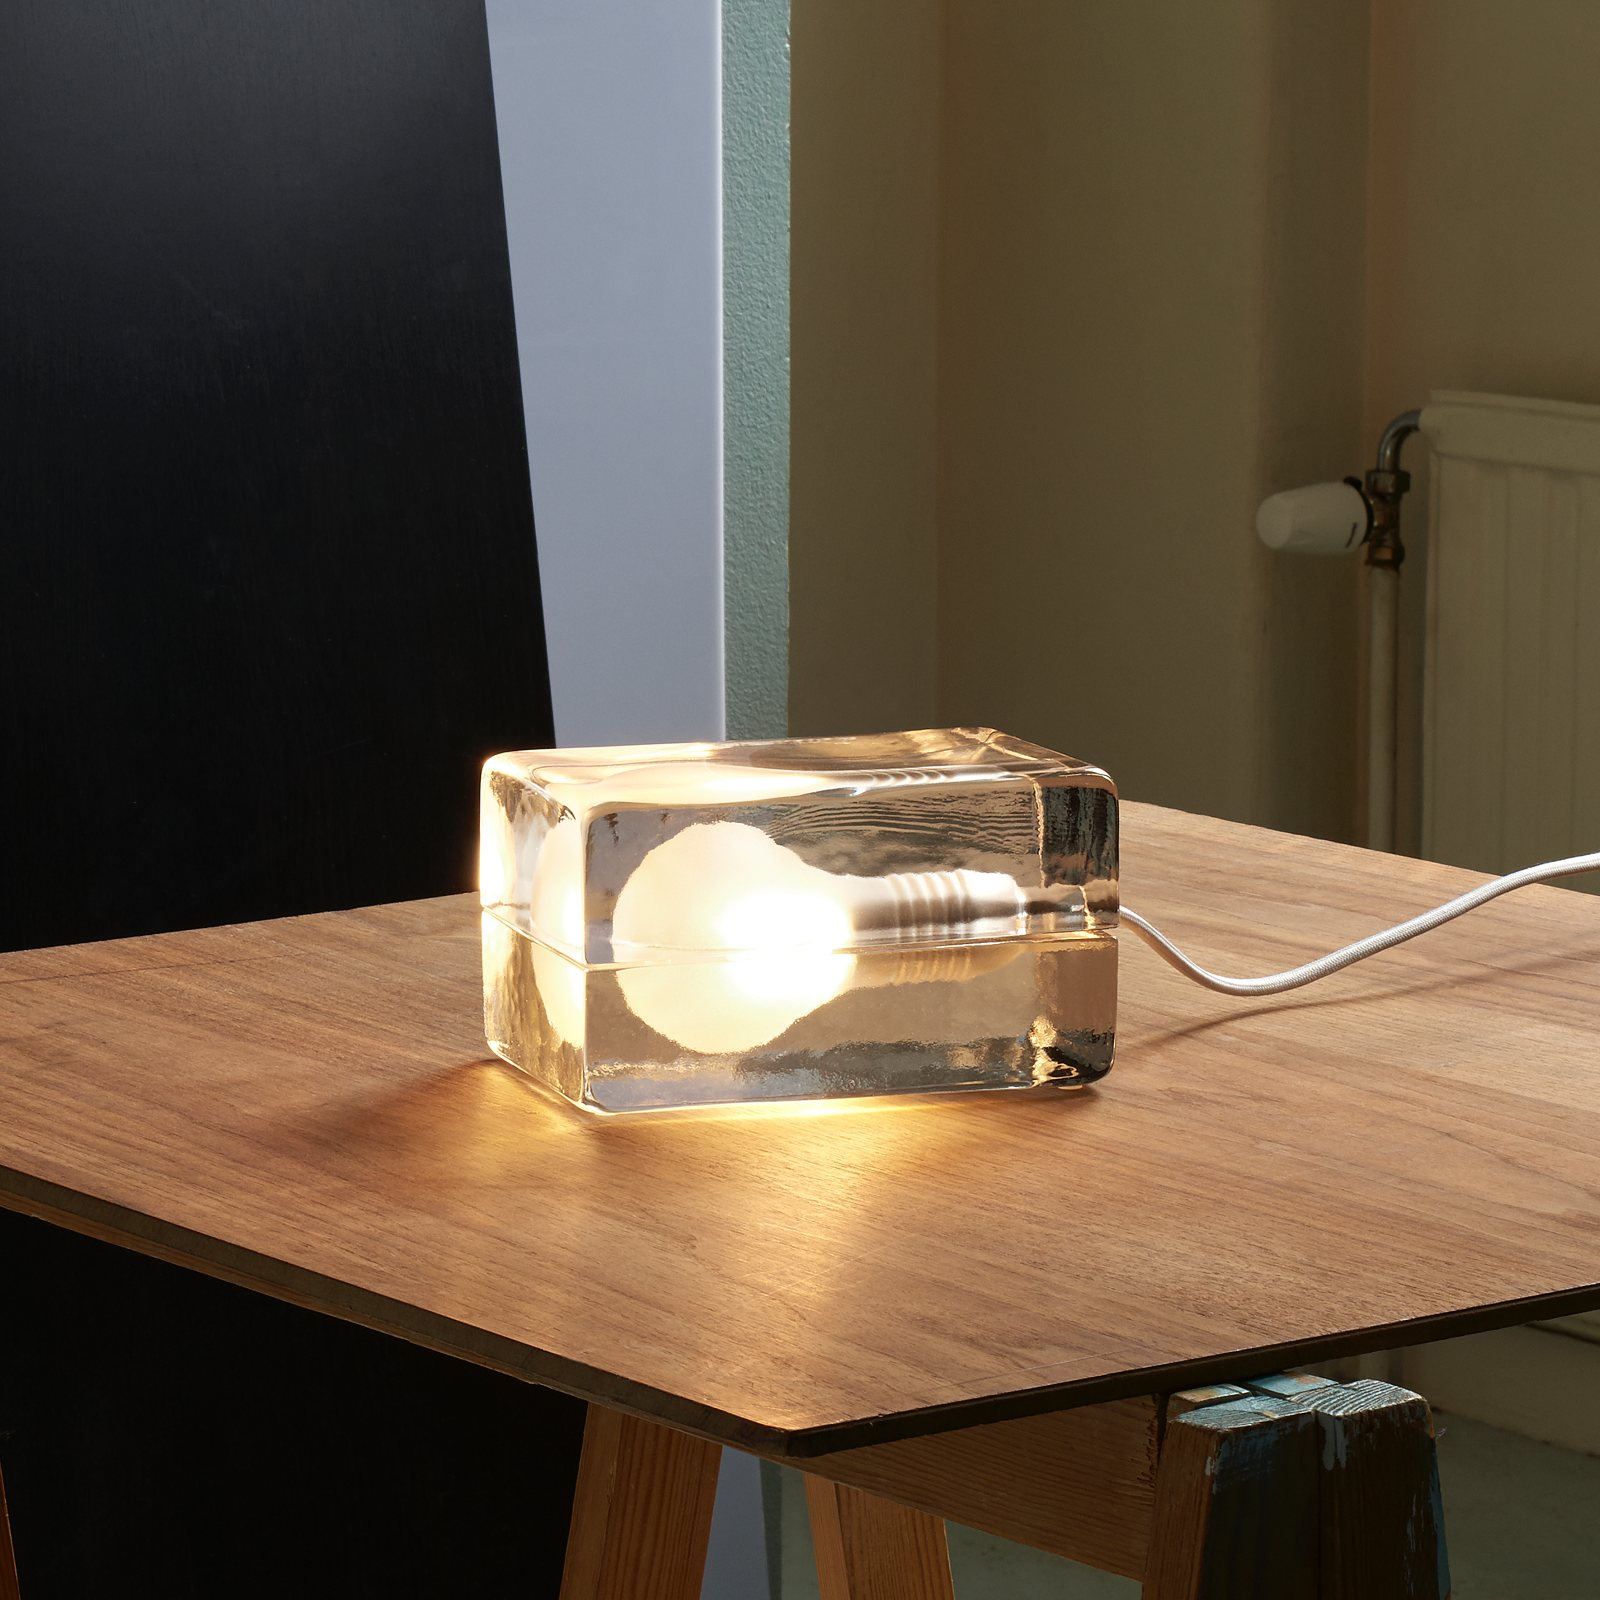 Block Lamp by Harri Koskinen for Design House Stockholm  UP interiors